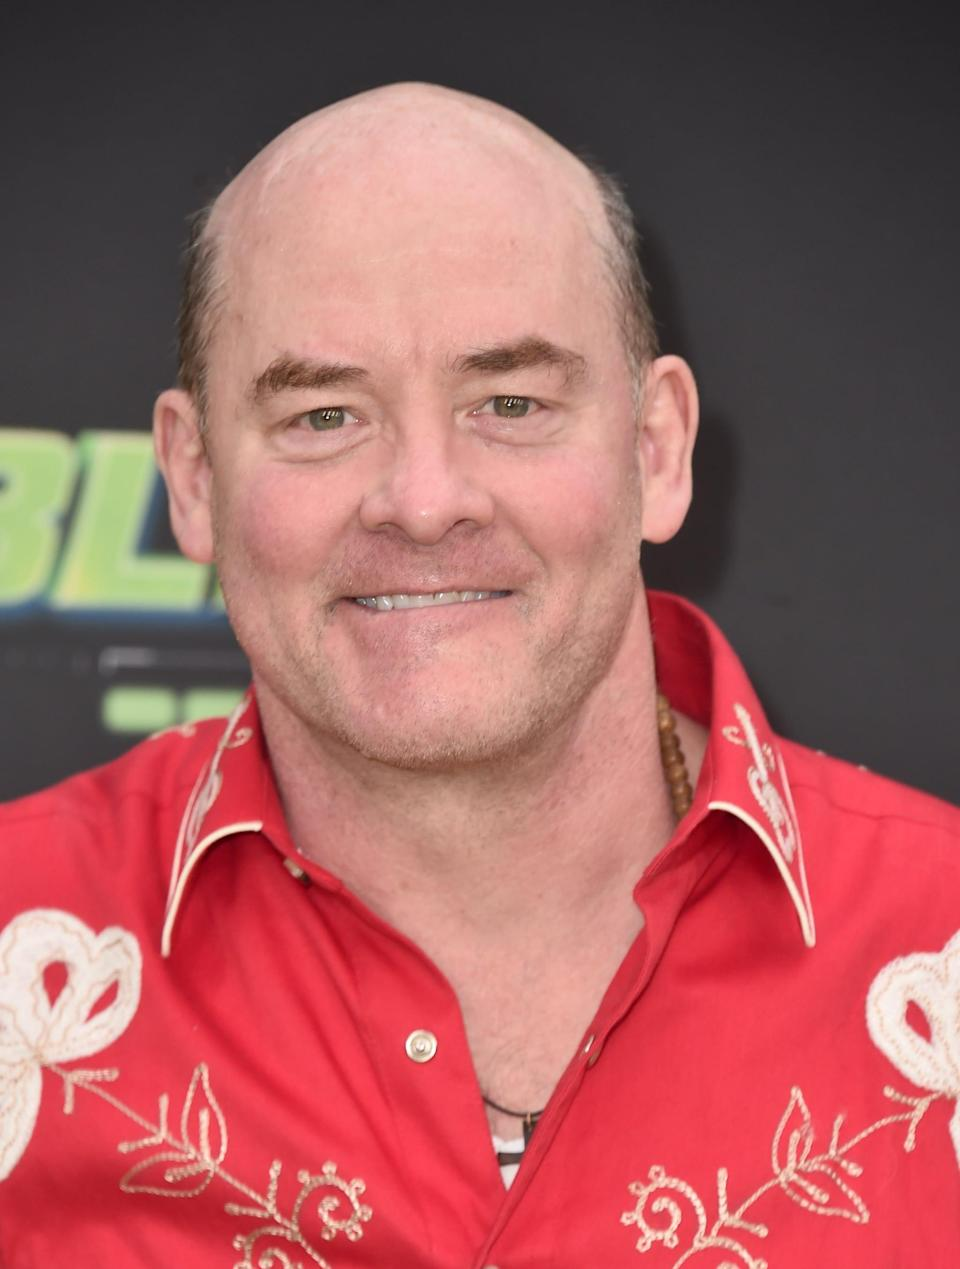 """<p>Comedian Koechner has the kind of résumé plenty of people dream about. He's been working steadily for decades, starting out in the '90s on <strong><a class=""""link rapid-noclick-resp"""" href=""""https://www.popsugar.co.uk/Saturday-Night-Live"""" rel=""""nofollow noopener"""" target=""""_blank"""" data-ylk=""""slk:Saturday Night Live"""">Saturday Night Live</a></strong> and moving on to roles like <strong>The Office</strong>'s Todd Packer and recurring spots on <strong>The Goldbergs</strong>, <strong>Bless This Mess</strong>, and more. Koechner also has appeared in a number of popular comedy movies, including <strong>Anchorman 2</strong>, and <strong>Get Smart</strong>.</p>"""